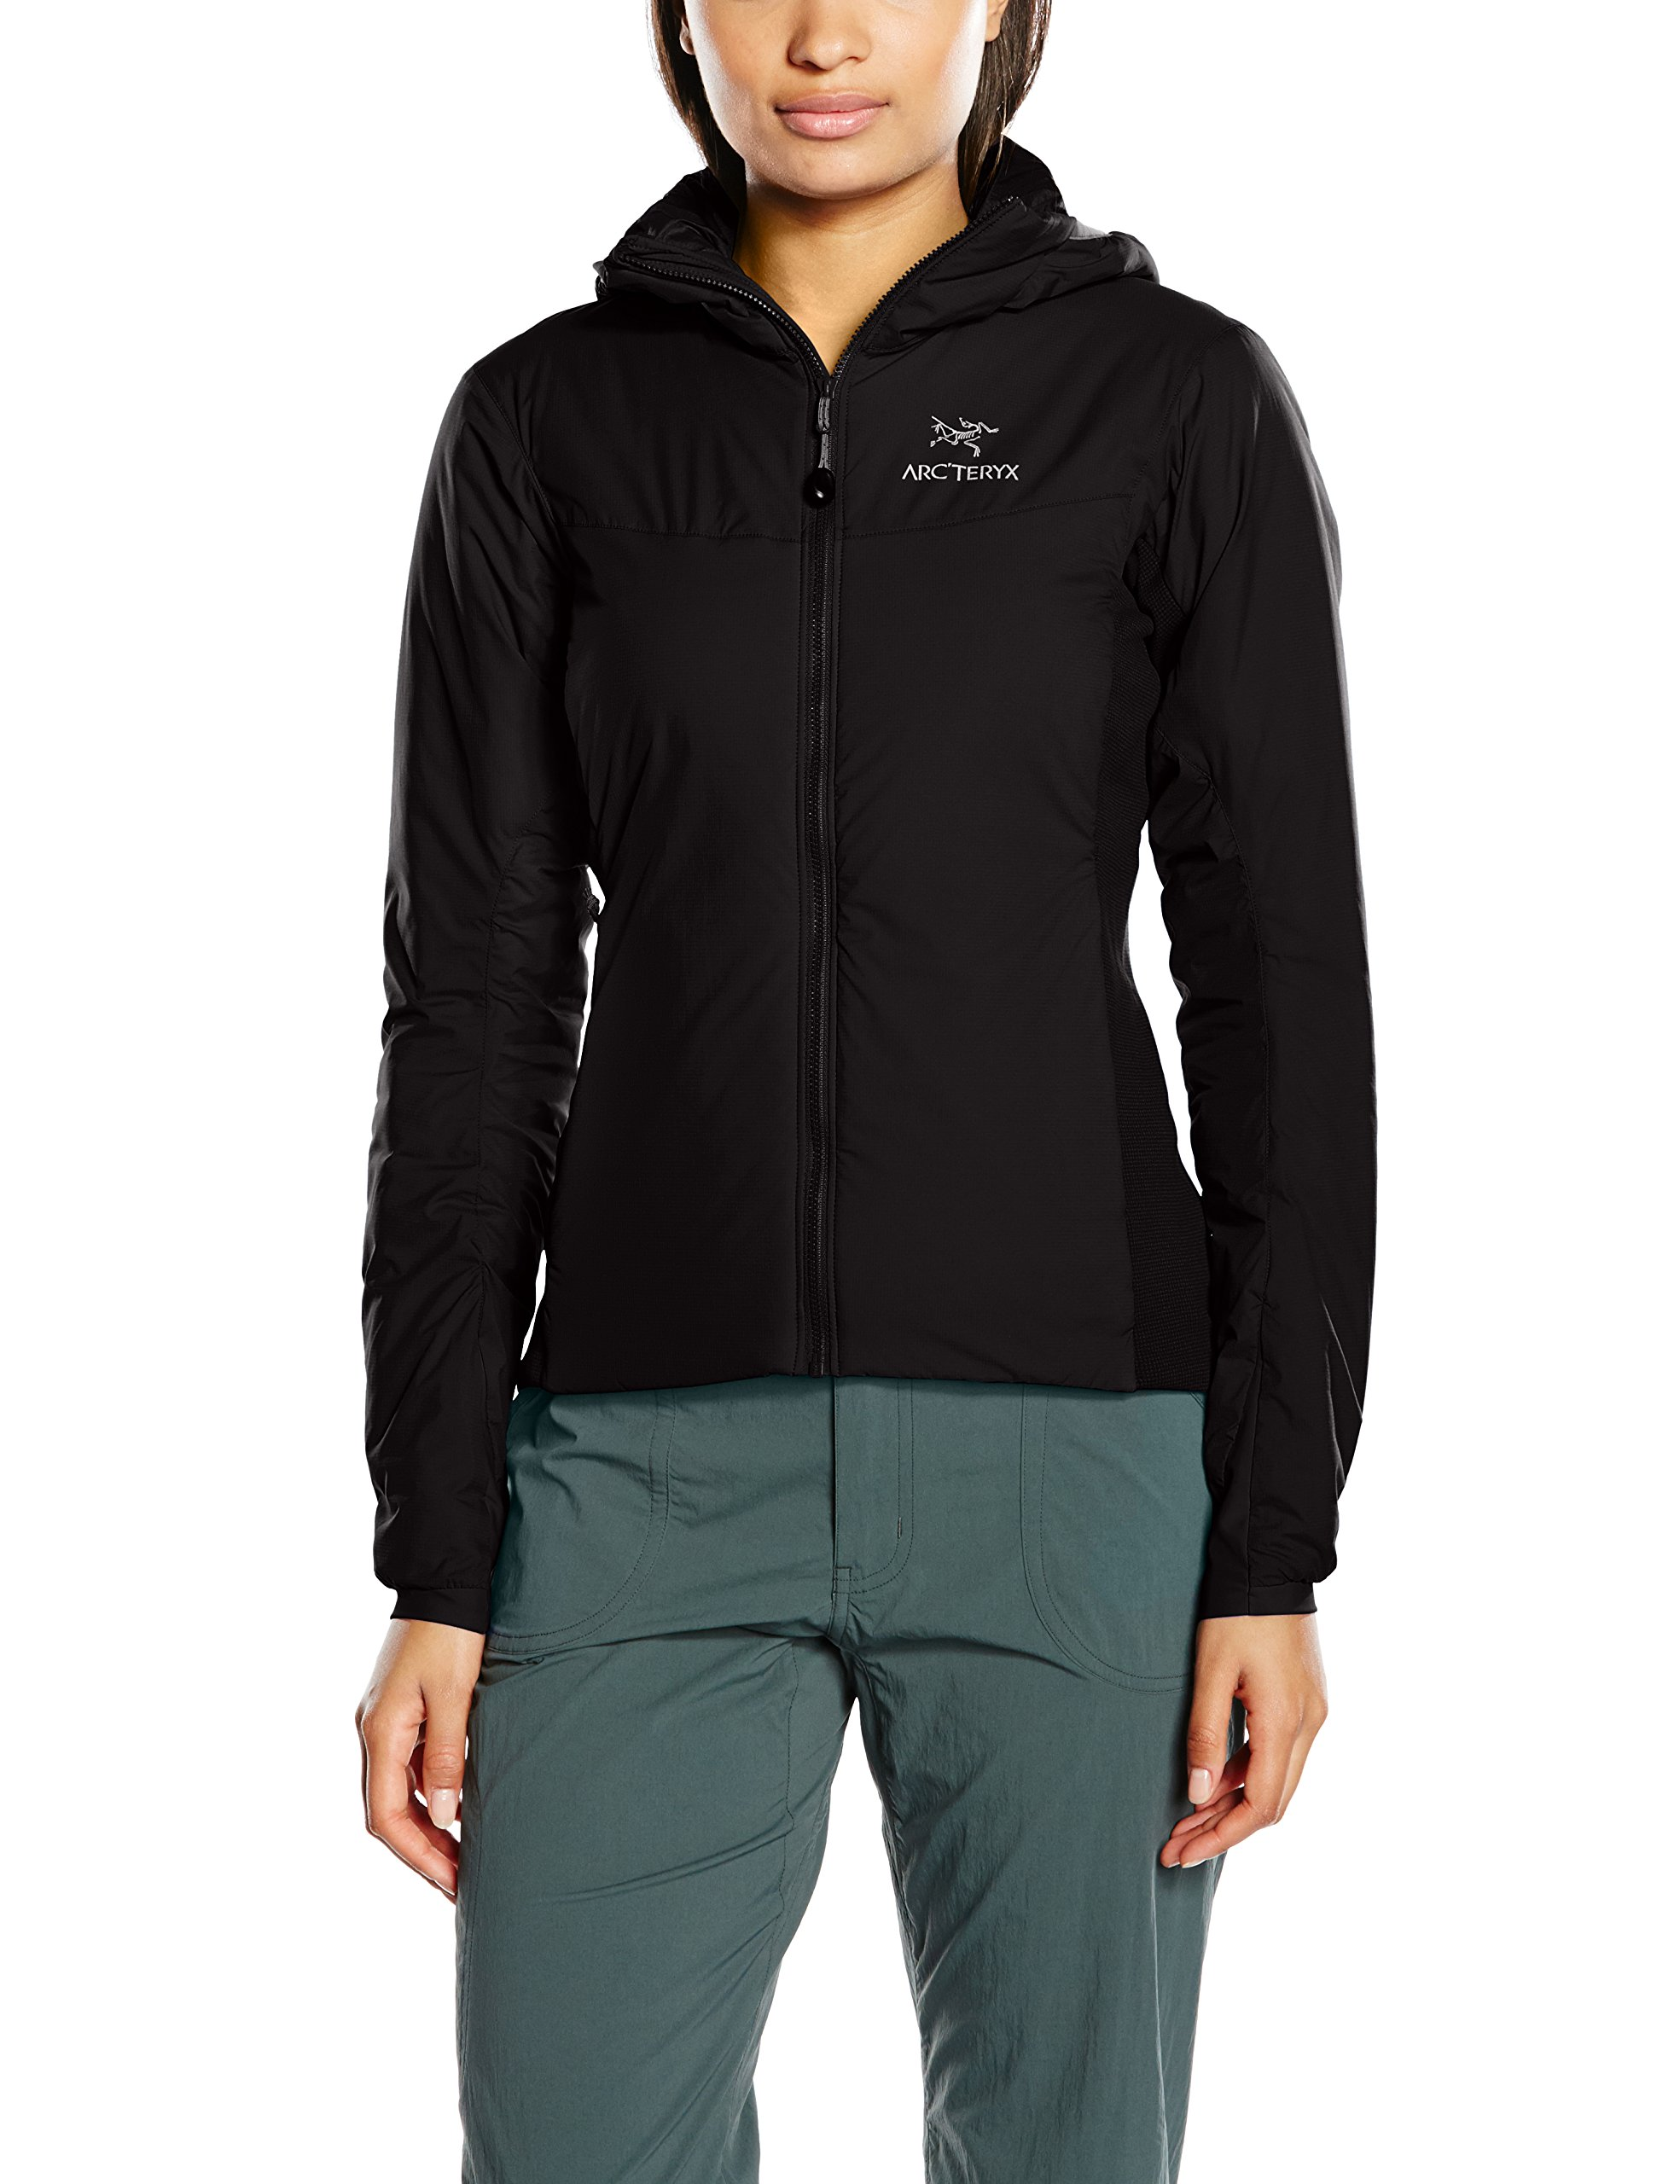 Arc'teryx Women's Atom LT Hoody Black MD